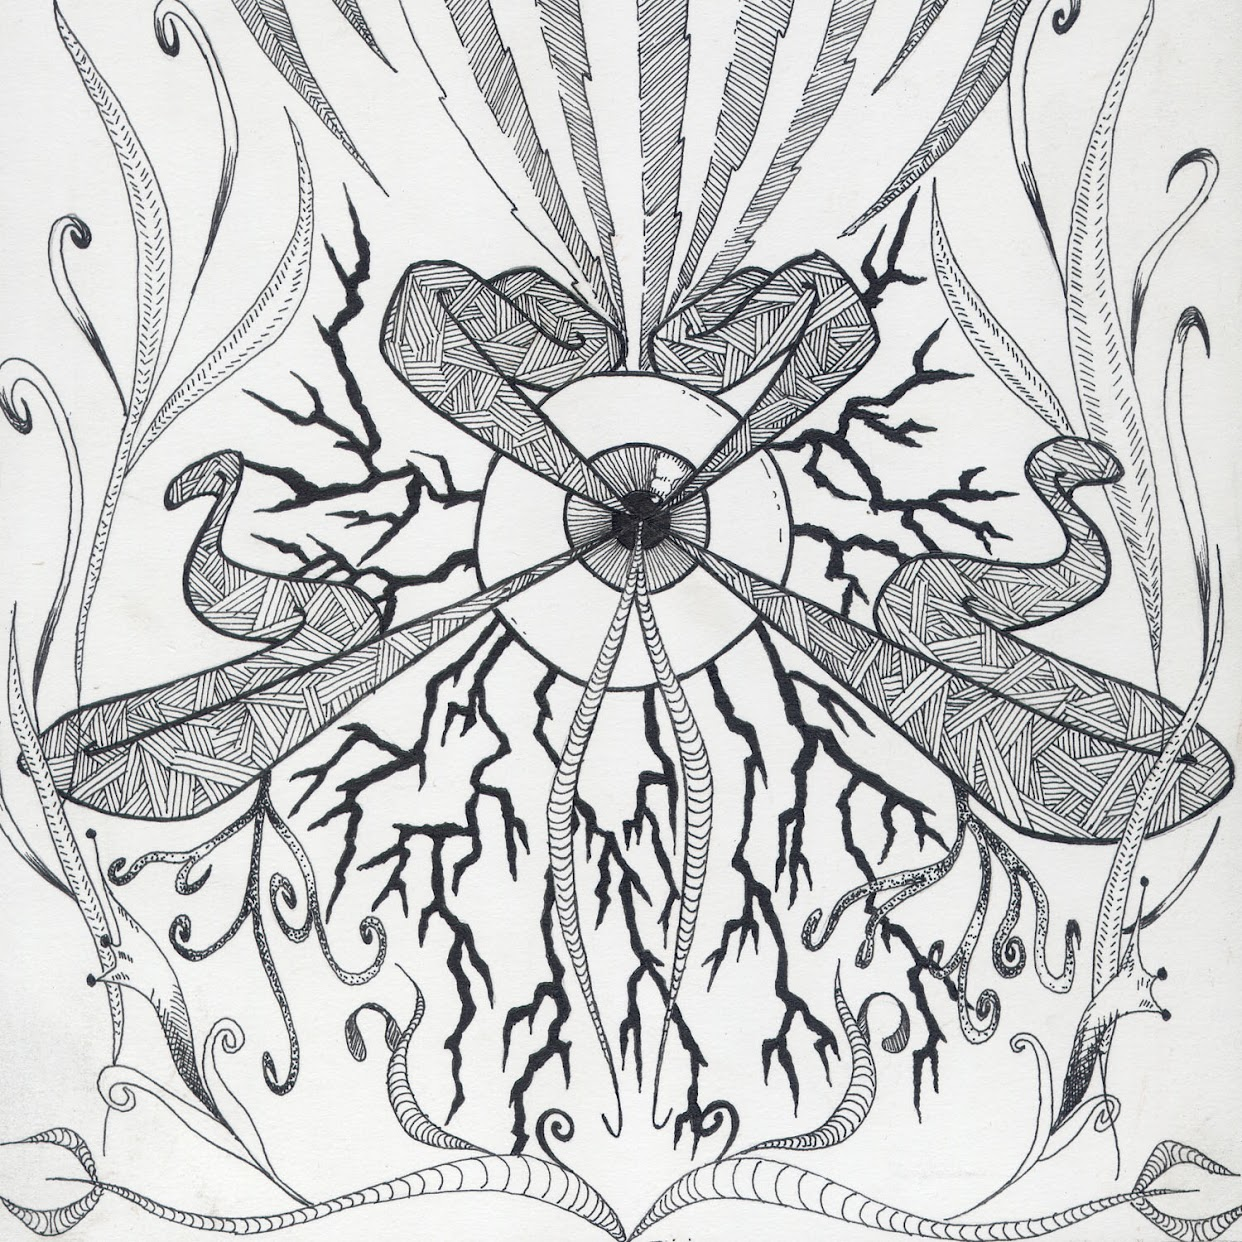 Trippy Stoner Drawings Related Drawing Designs